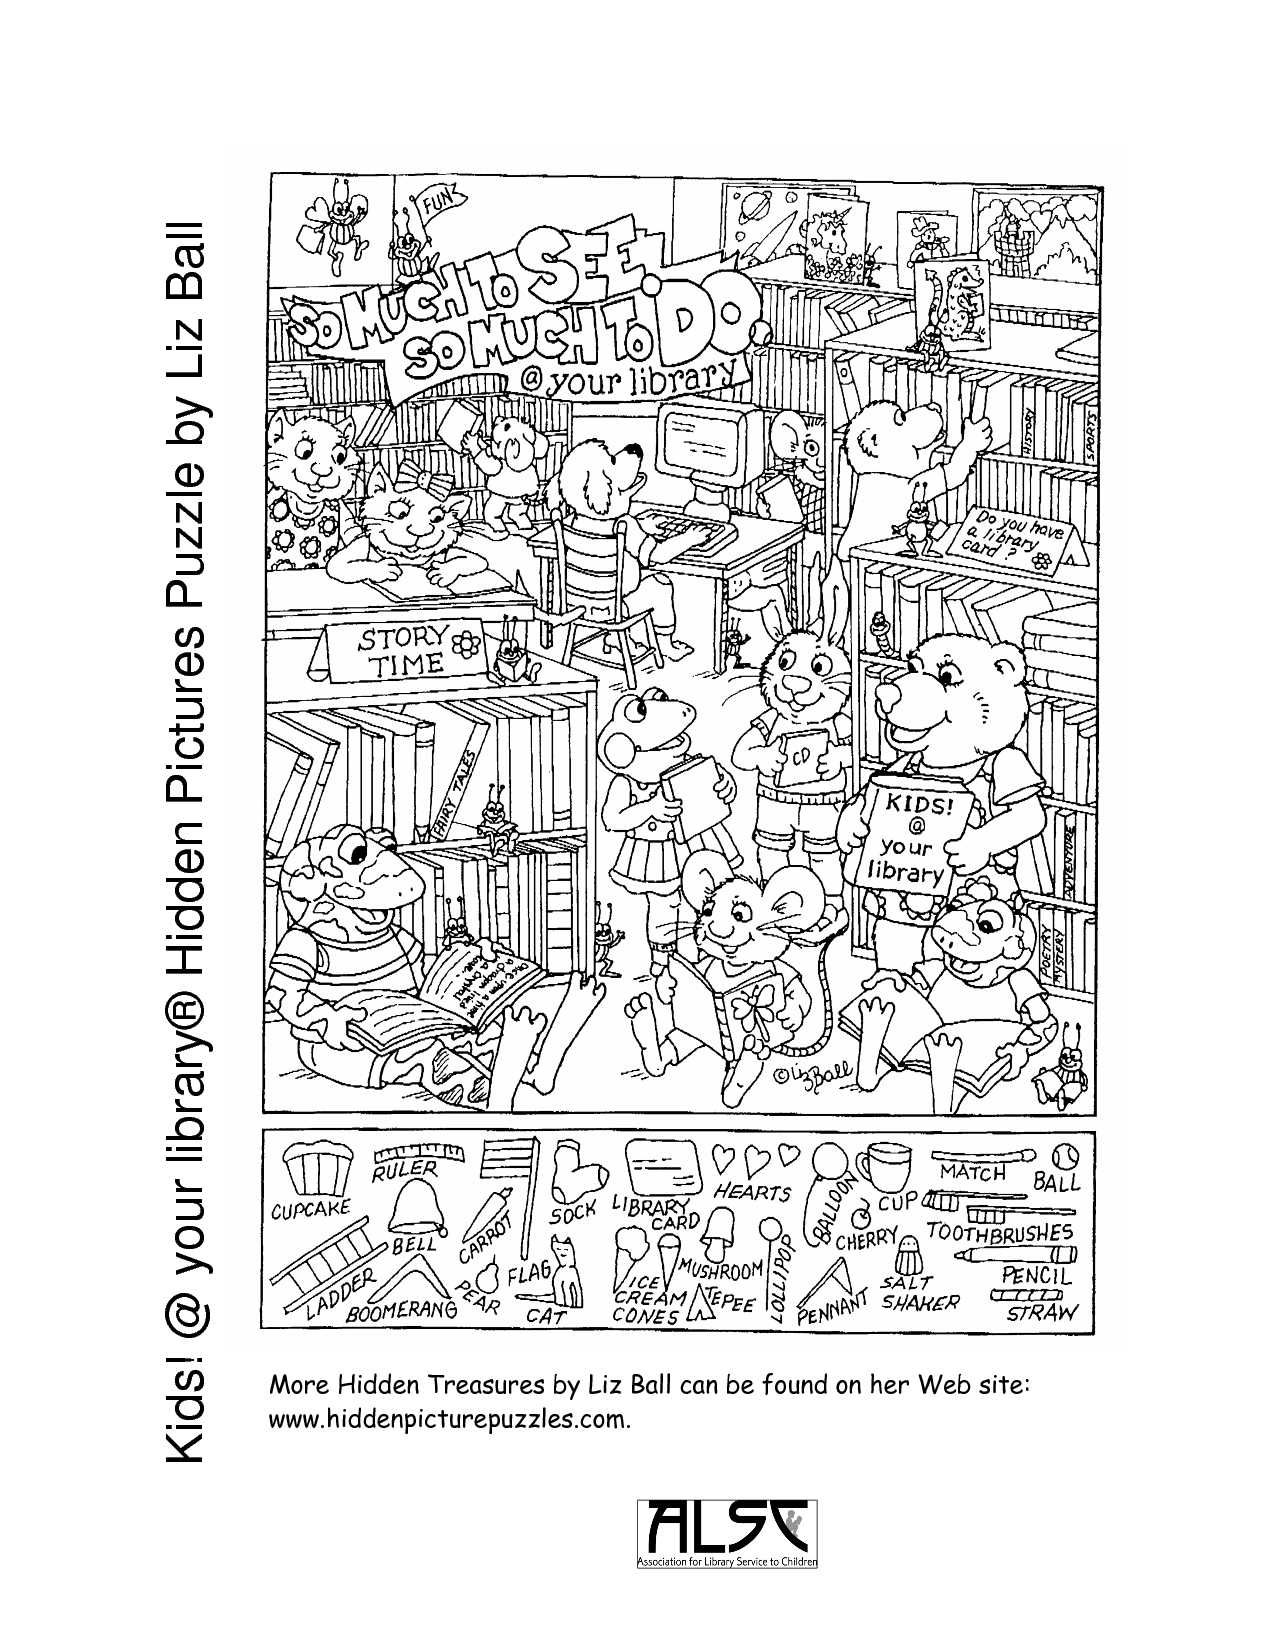 printable puzzles for adults | Kids your library® Hidden Pictures ...